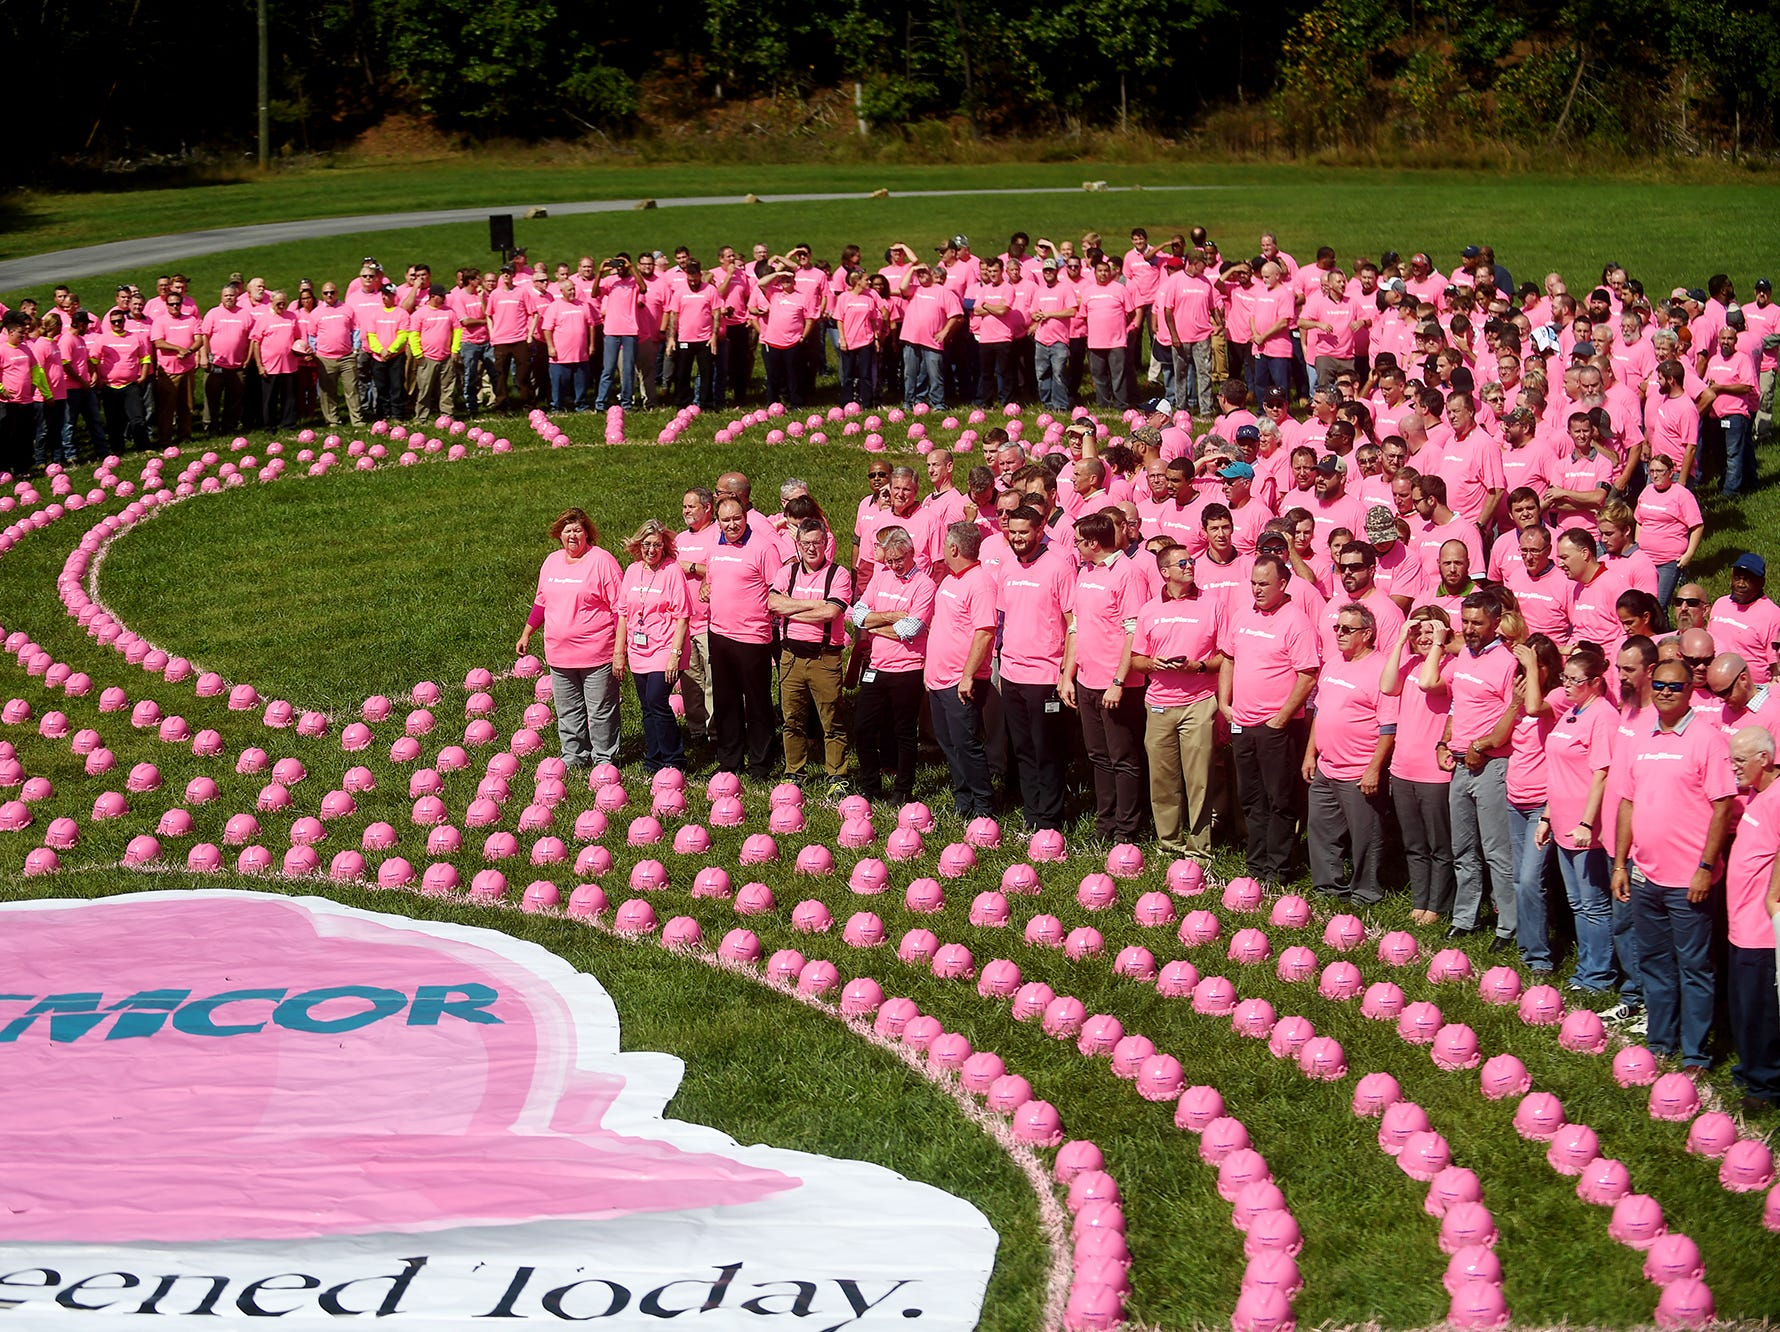 """EMCOR/Bahnson Mechanical Systems and 630 BorgWarner employees created a visual call to action with EMCOR's signature giant human pink hard hat ribbon for their """"Protect yourself. Get screened today."""" campaign Oct. 1, 2018 in Arden to kickoff Breast Cancer Awareness Month."""